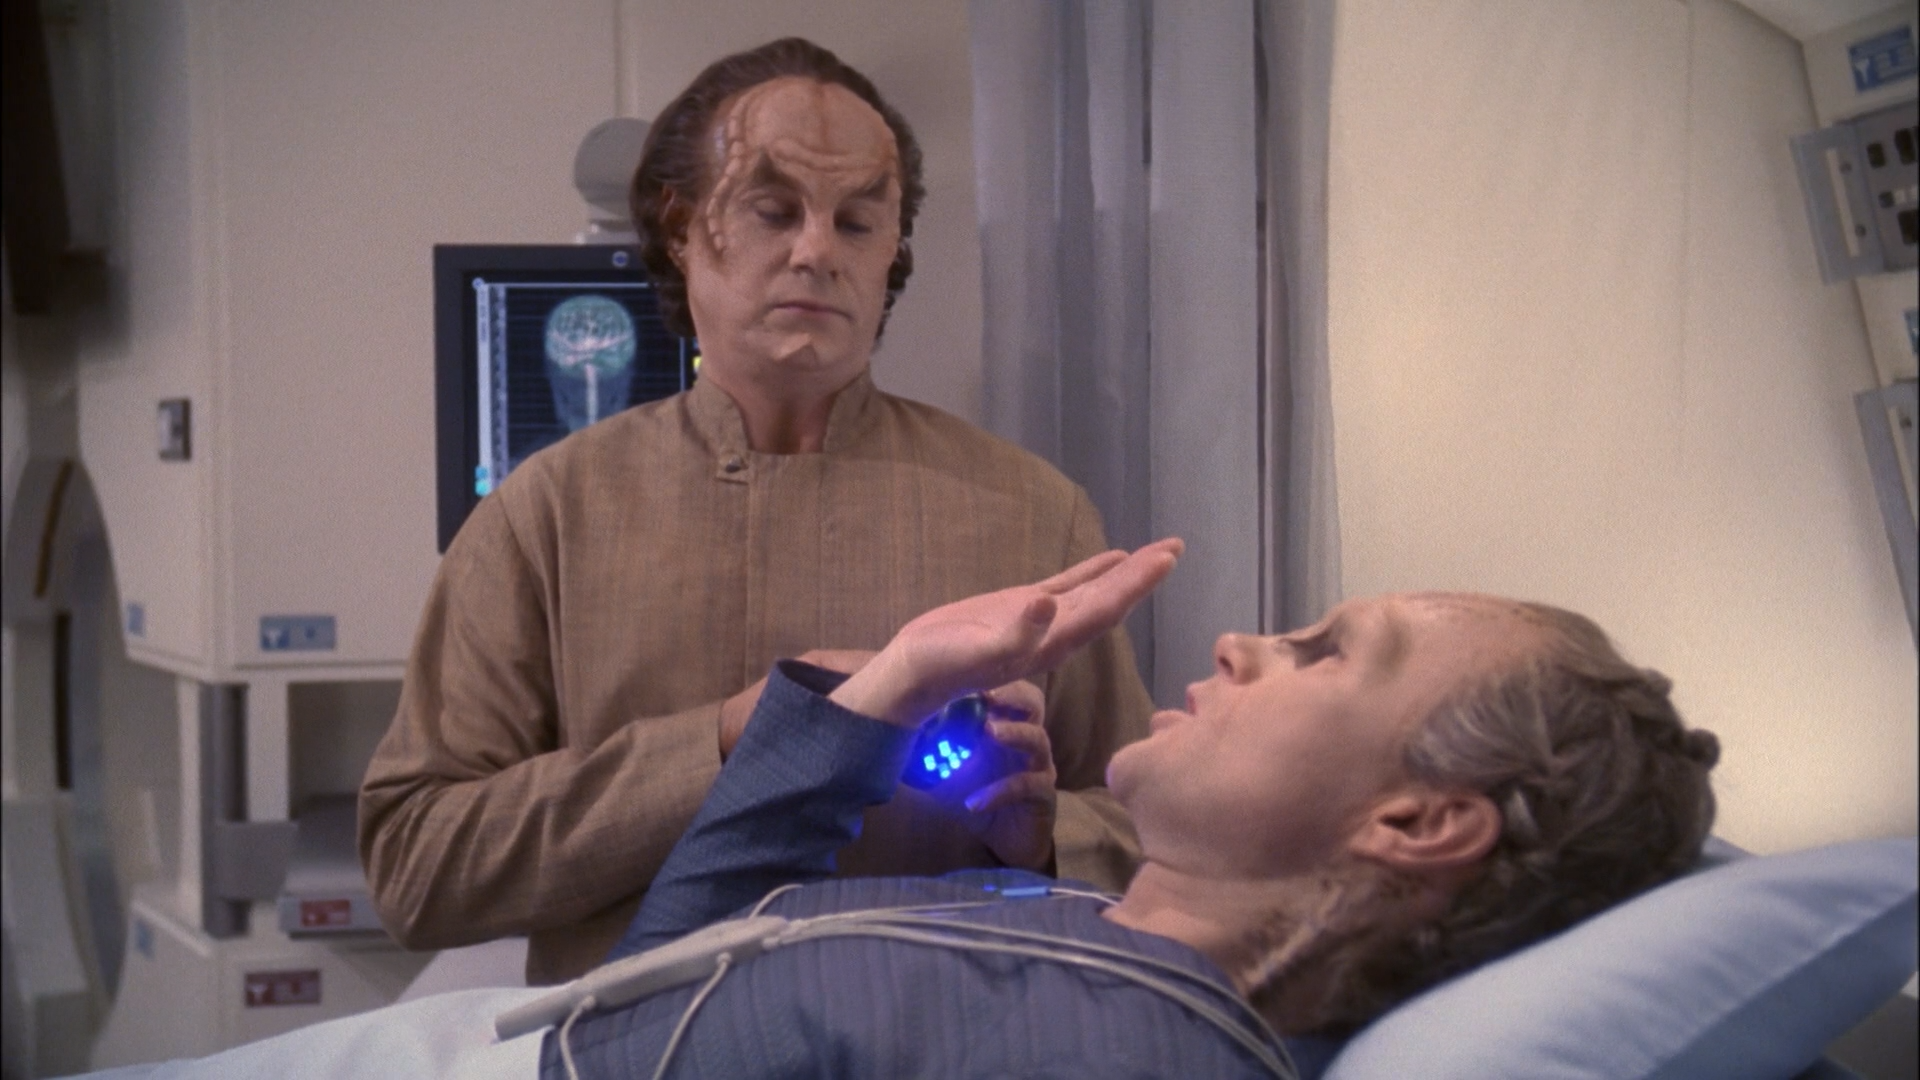 star_trek_enterprise_s02e21_1080p_bluray_x264-greenblade_mkv_snapshot_29_46_827.png